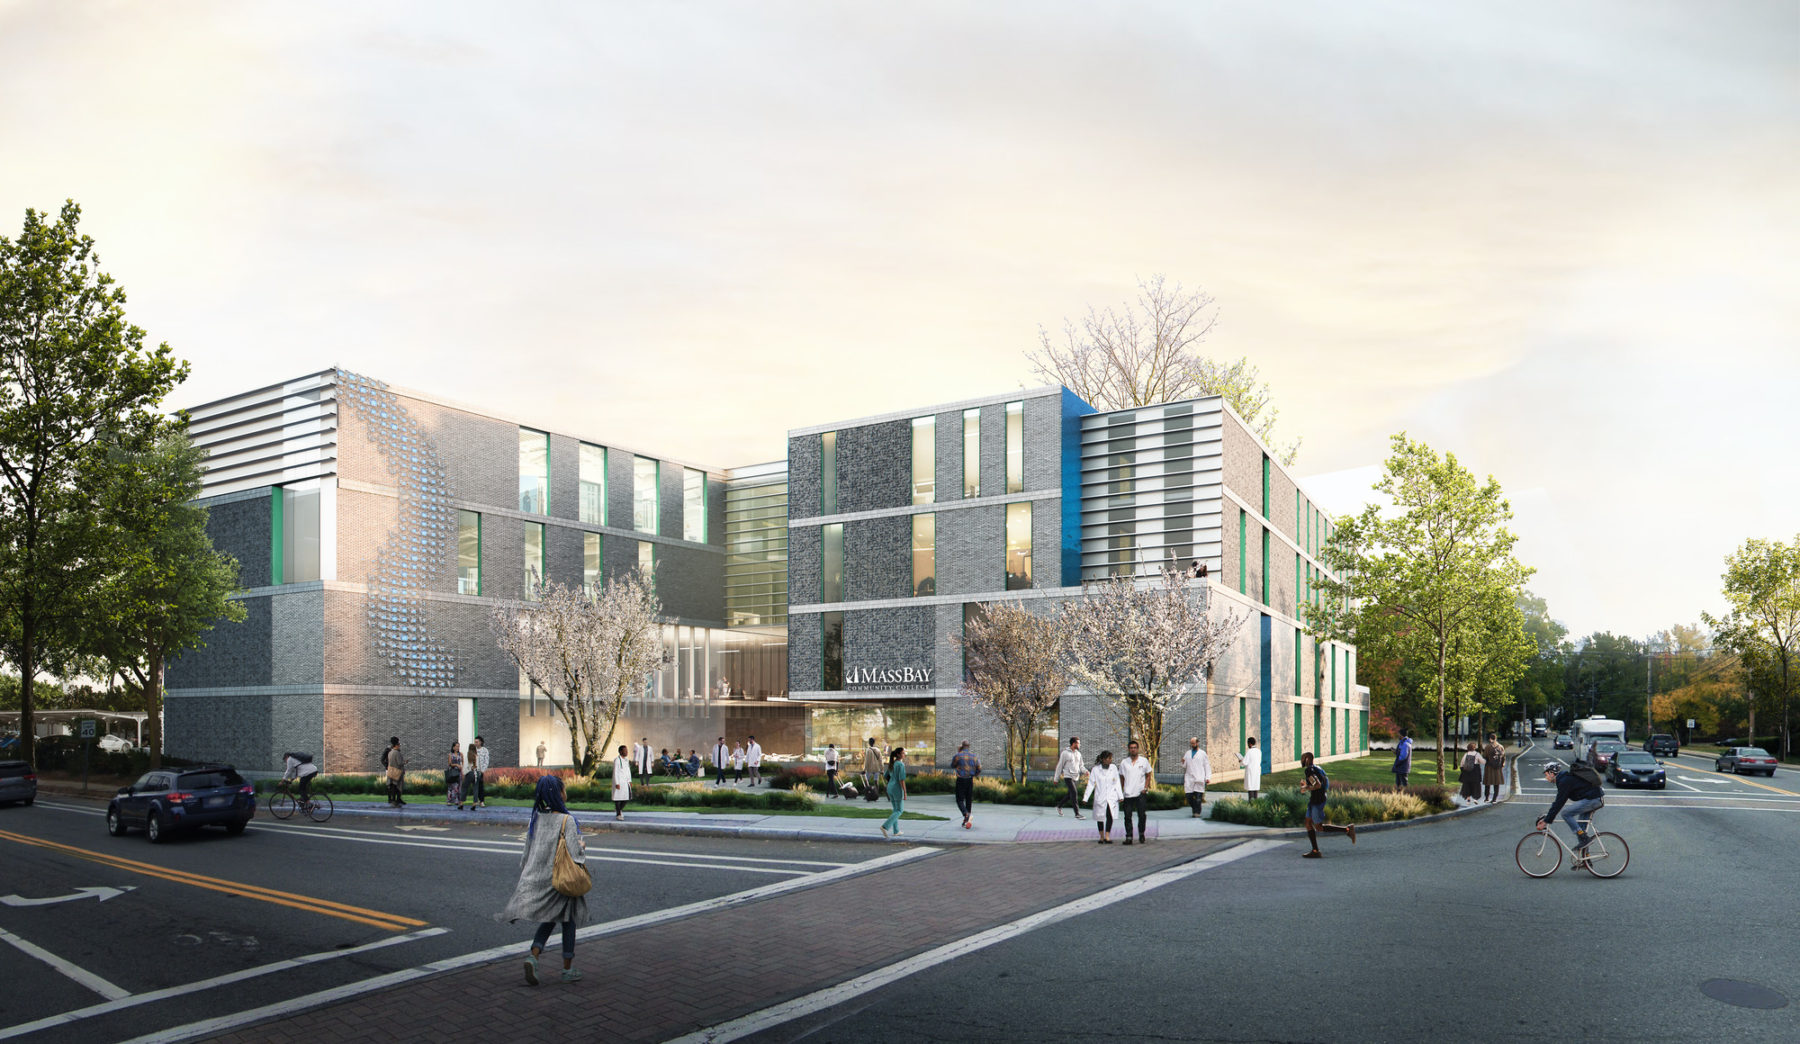 exterior rendering of the building with people crossing the street in front